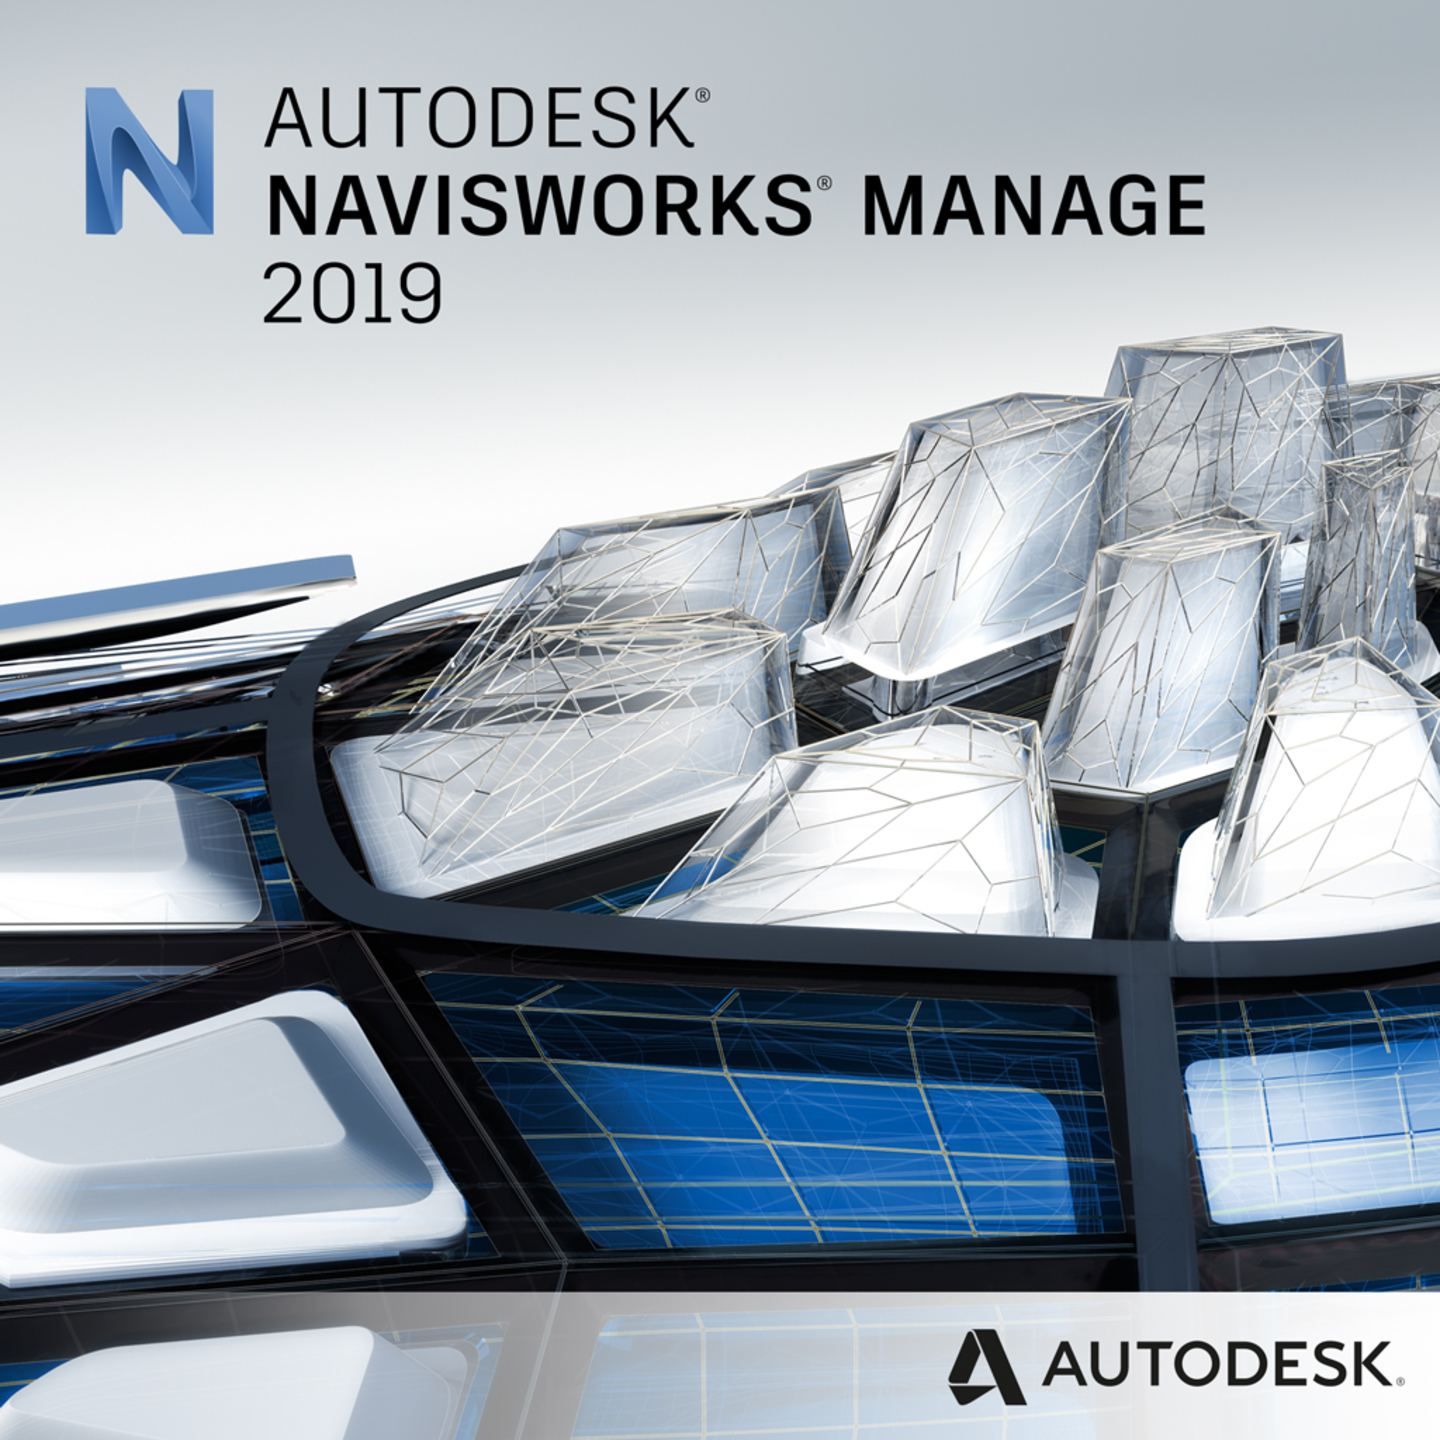 Autodesk Navisworks Manage 2019 (1-Year Subscription)